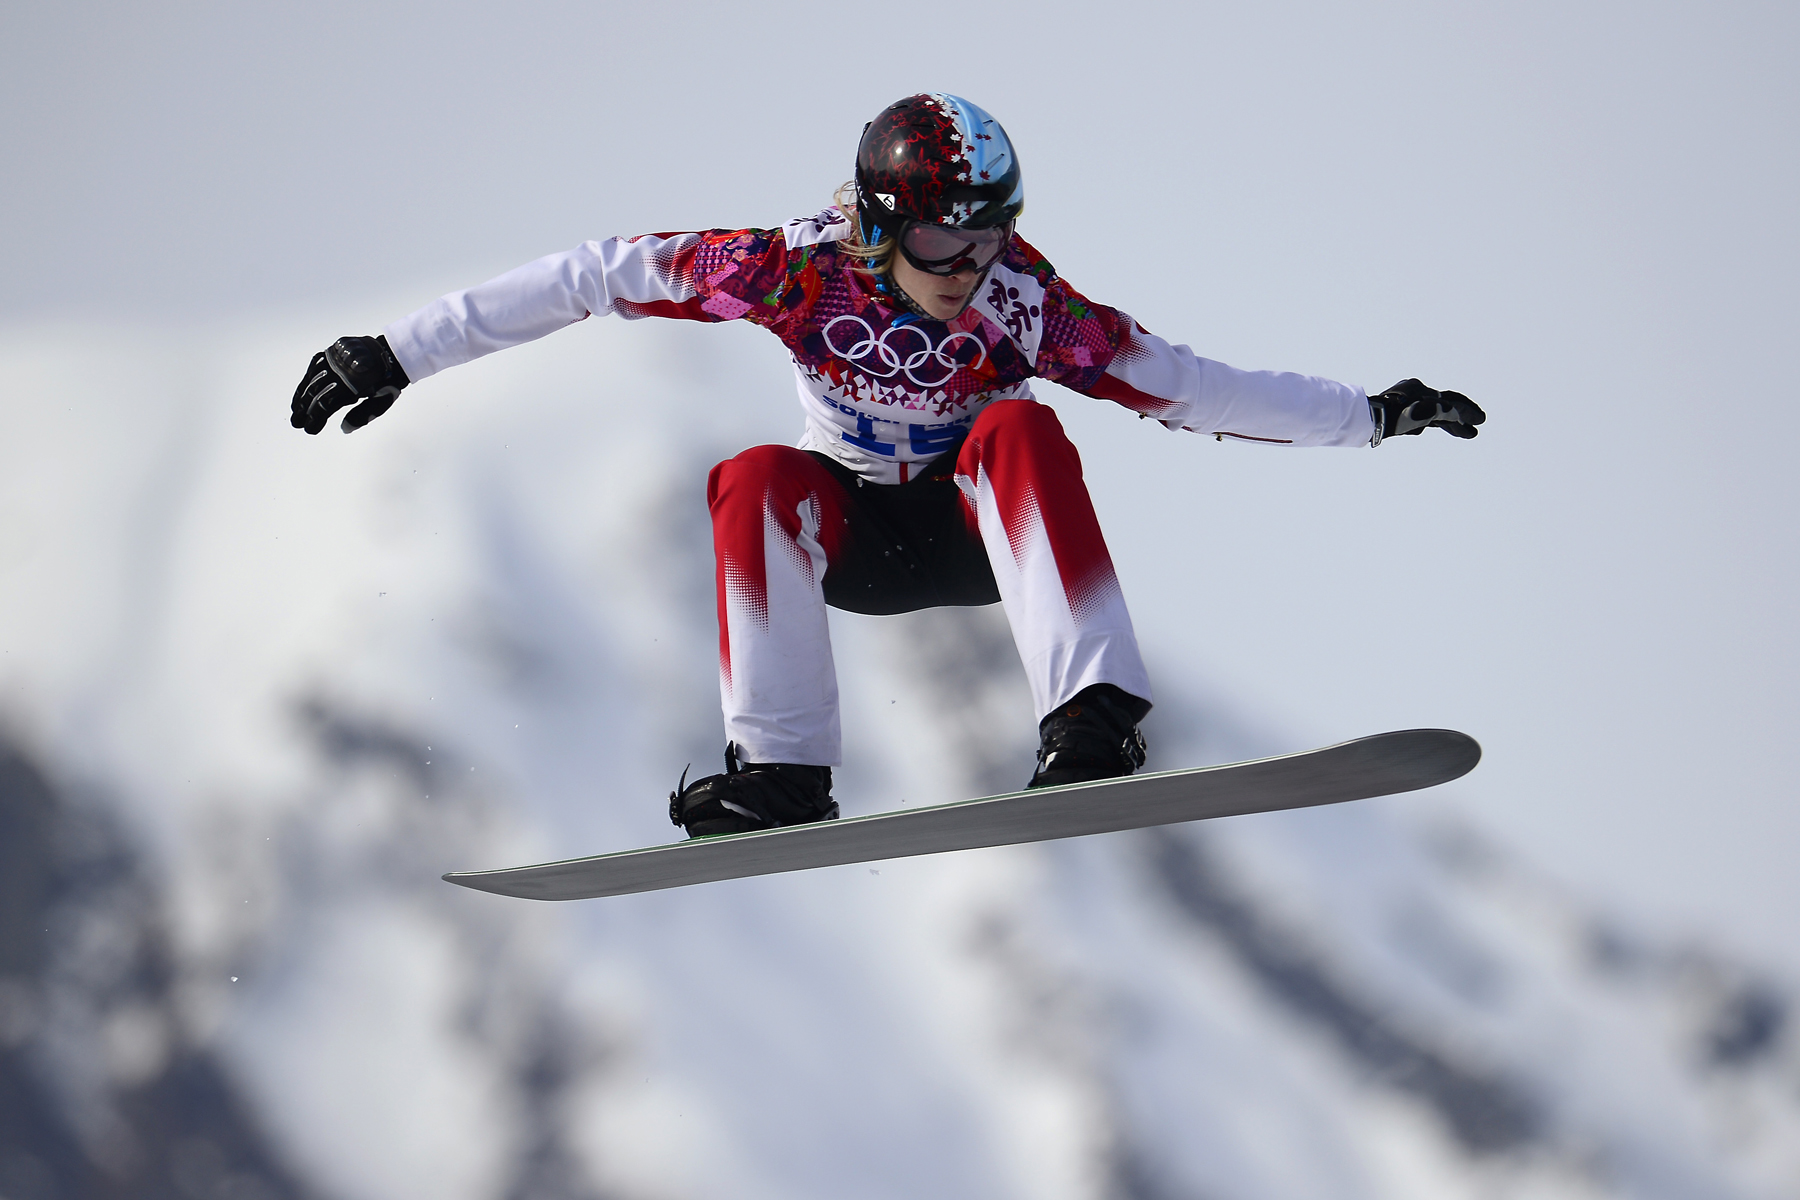 Canadian olympic snowboarding